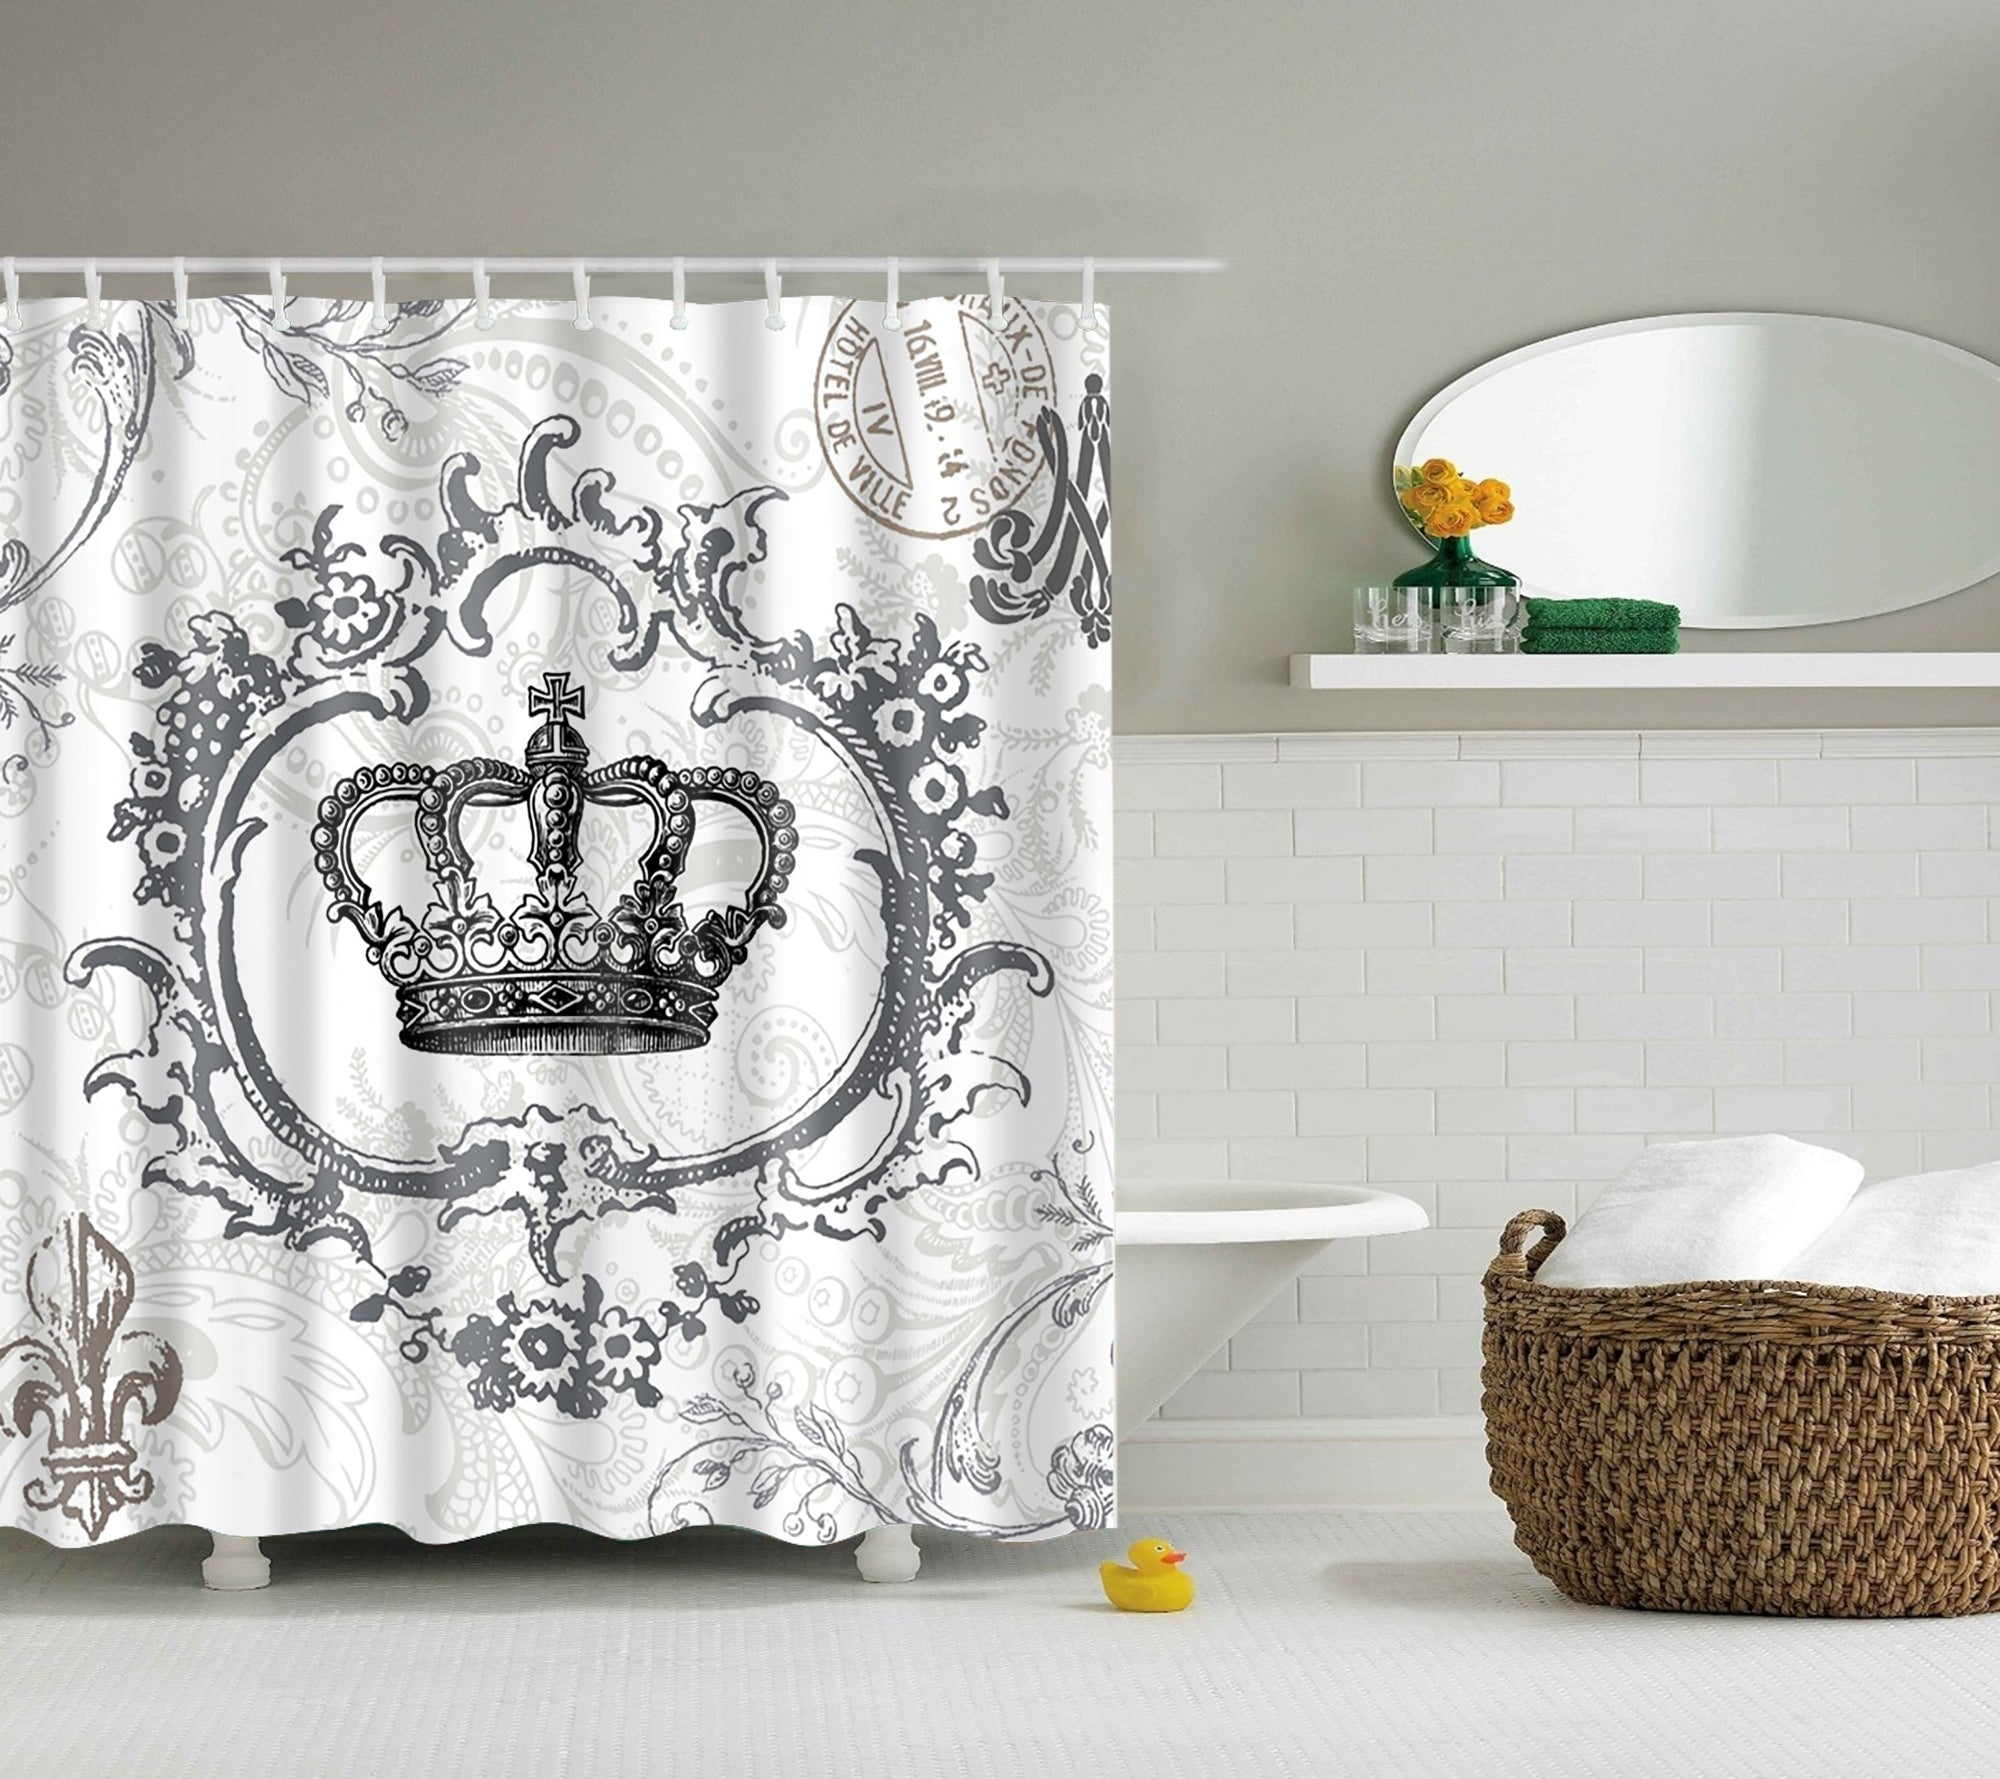 Elegance Queen Crown Design Shower Curtain